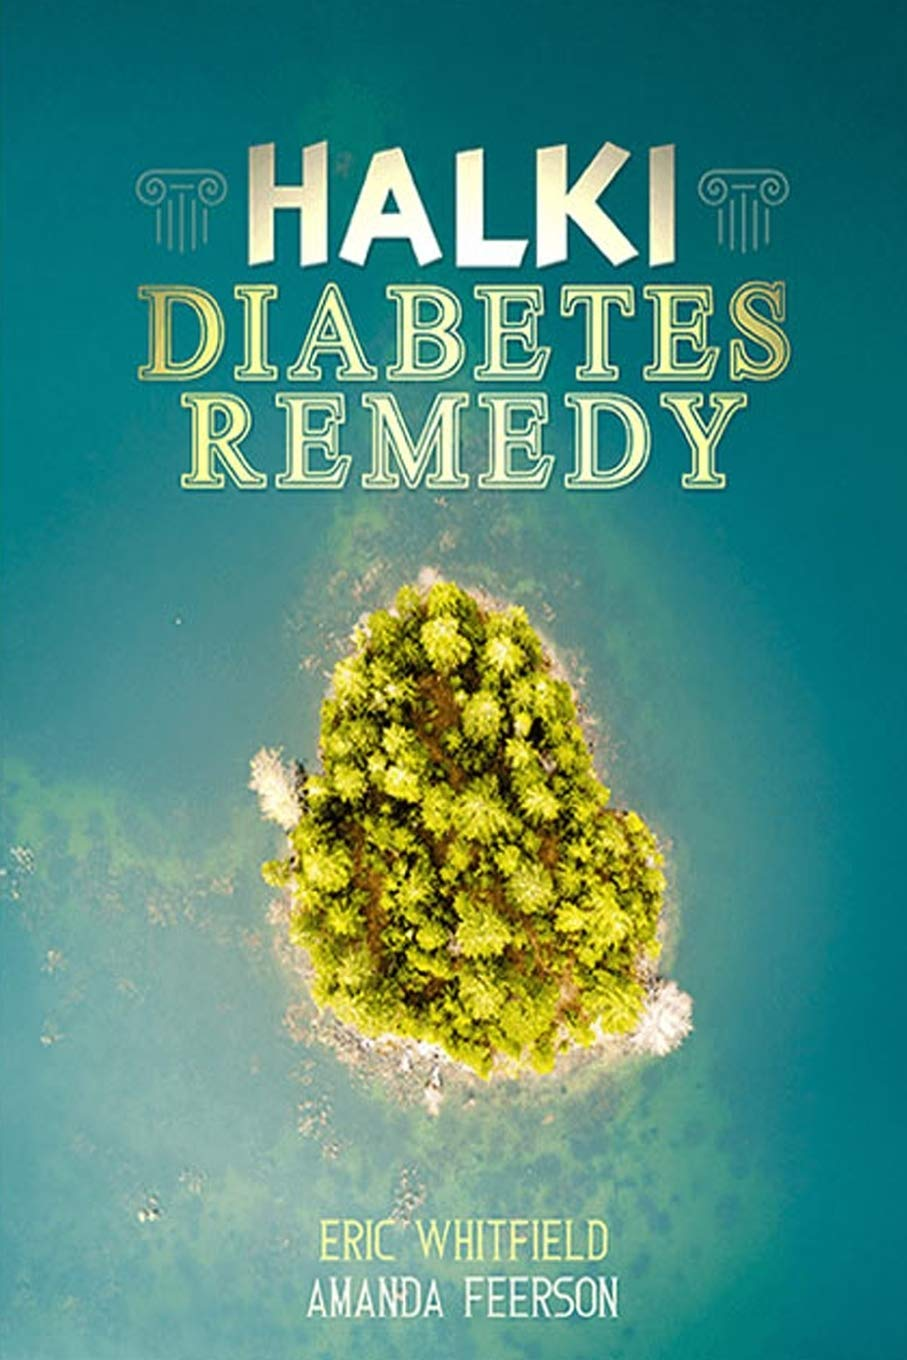 Reserve Diabetes   Halki Diabetes  Cheap Amazon